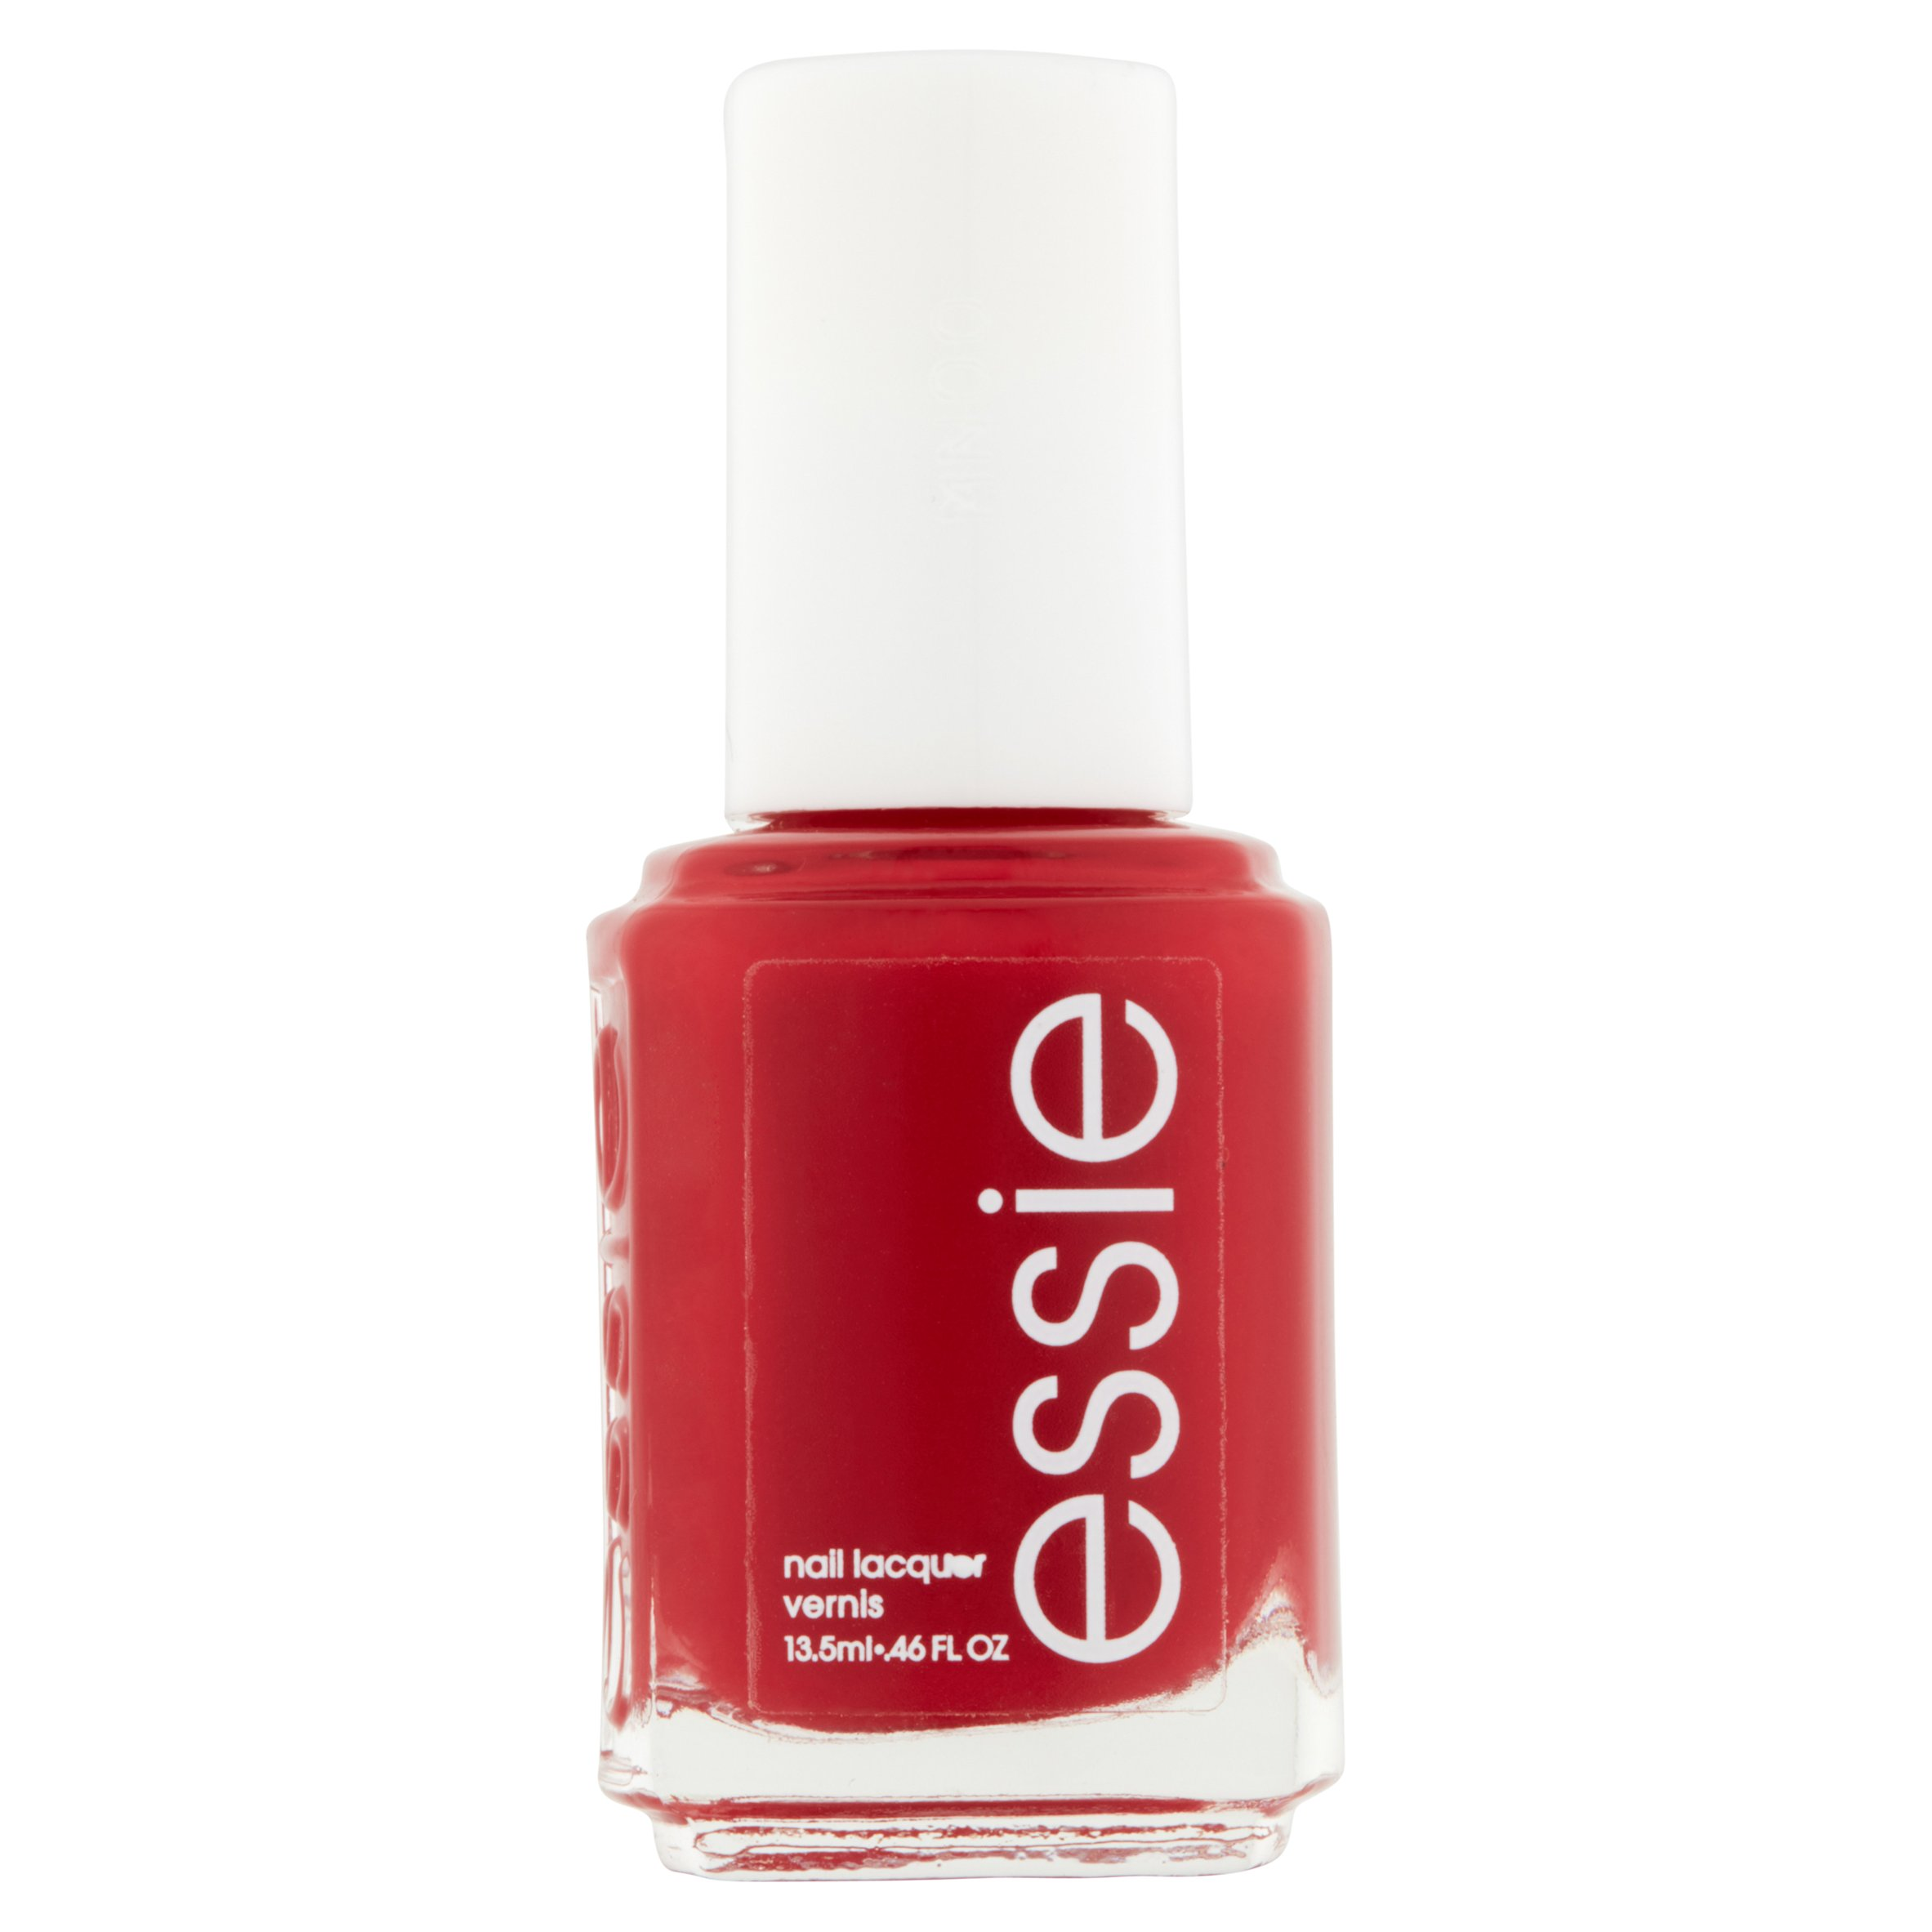 Essie Nail Polish (Reds) Really Red, 0.46 fl oz - Walmart.com